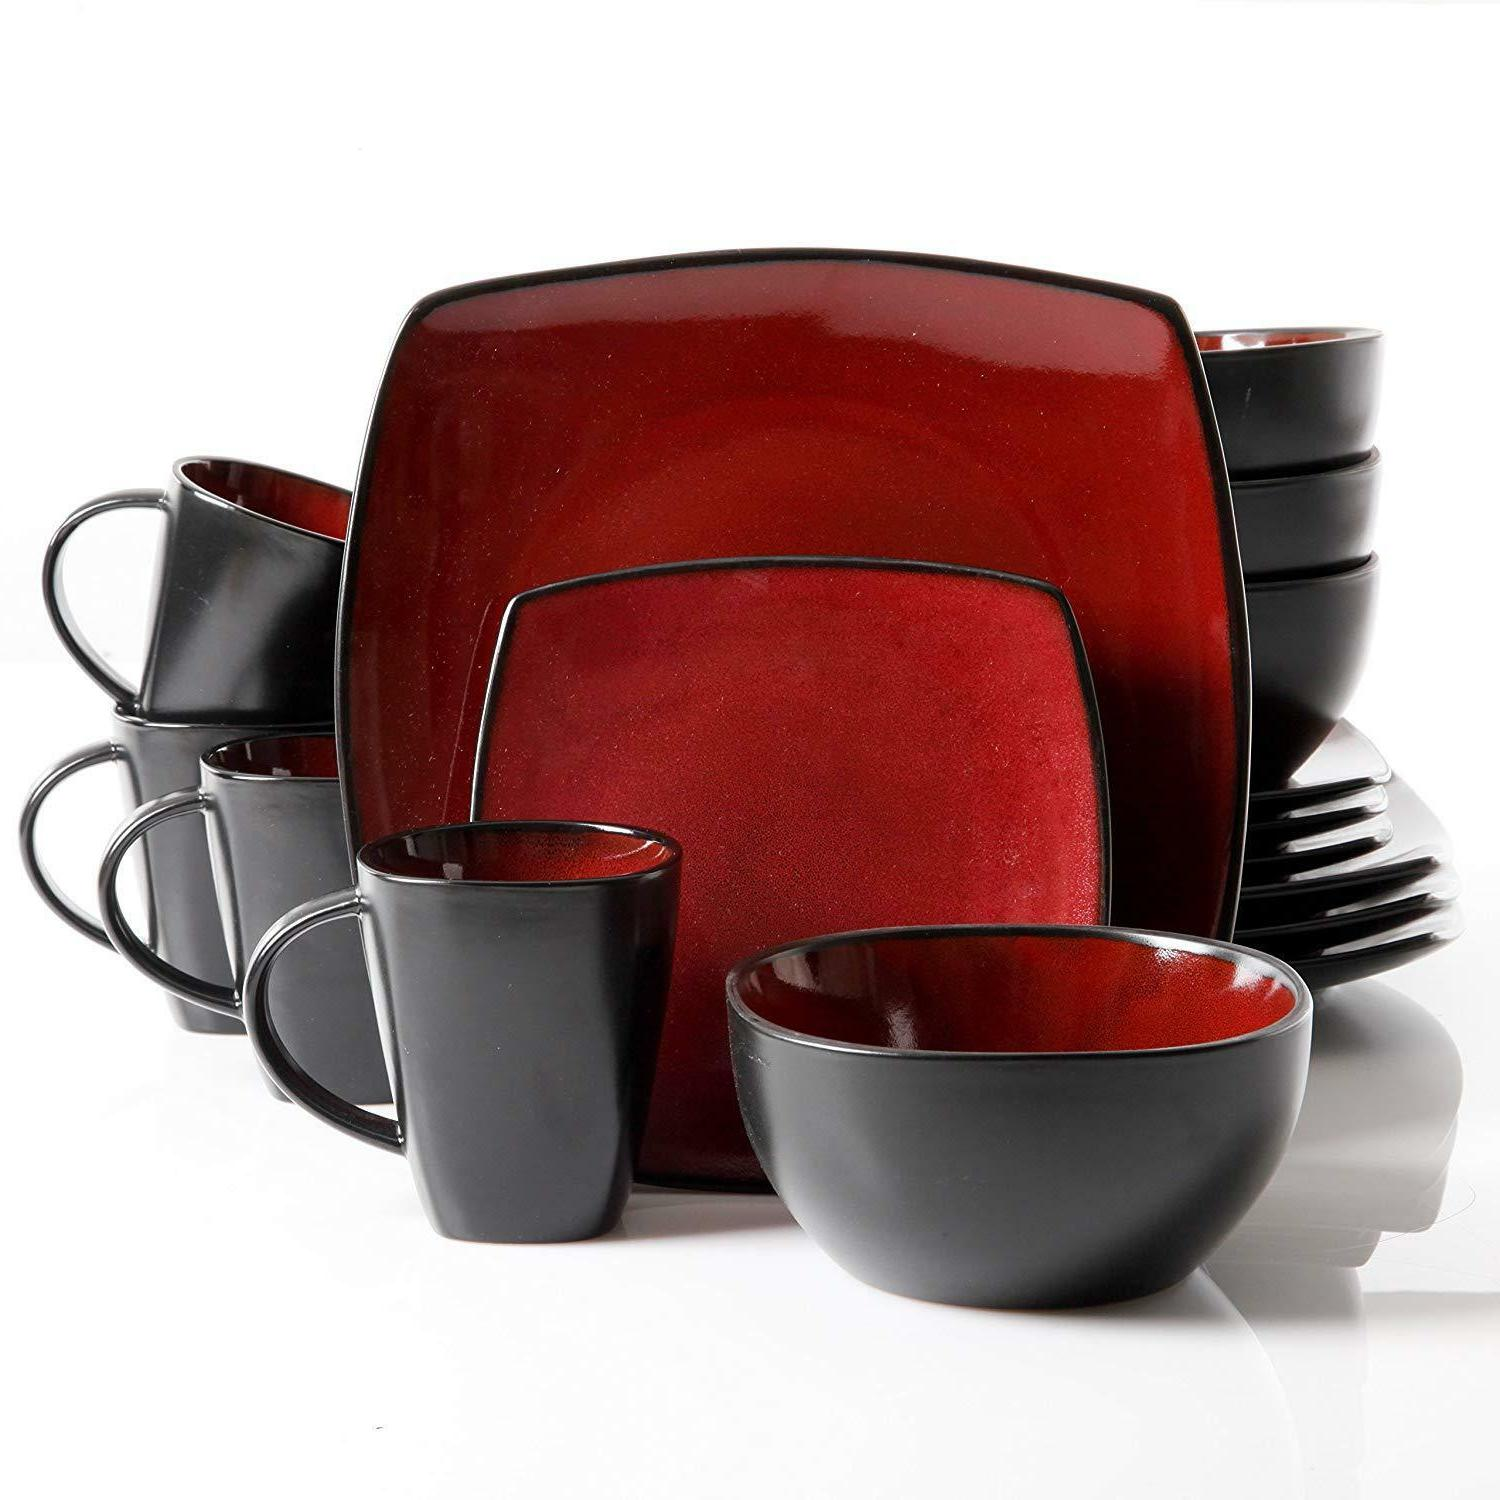 Dinnerware Set Plates Mugs For Home Kitchen Pieces